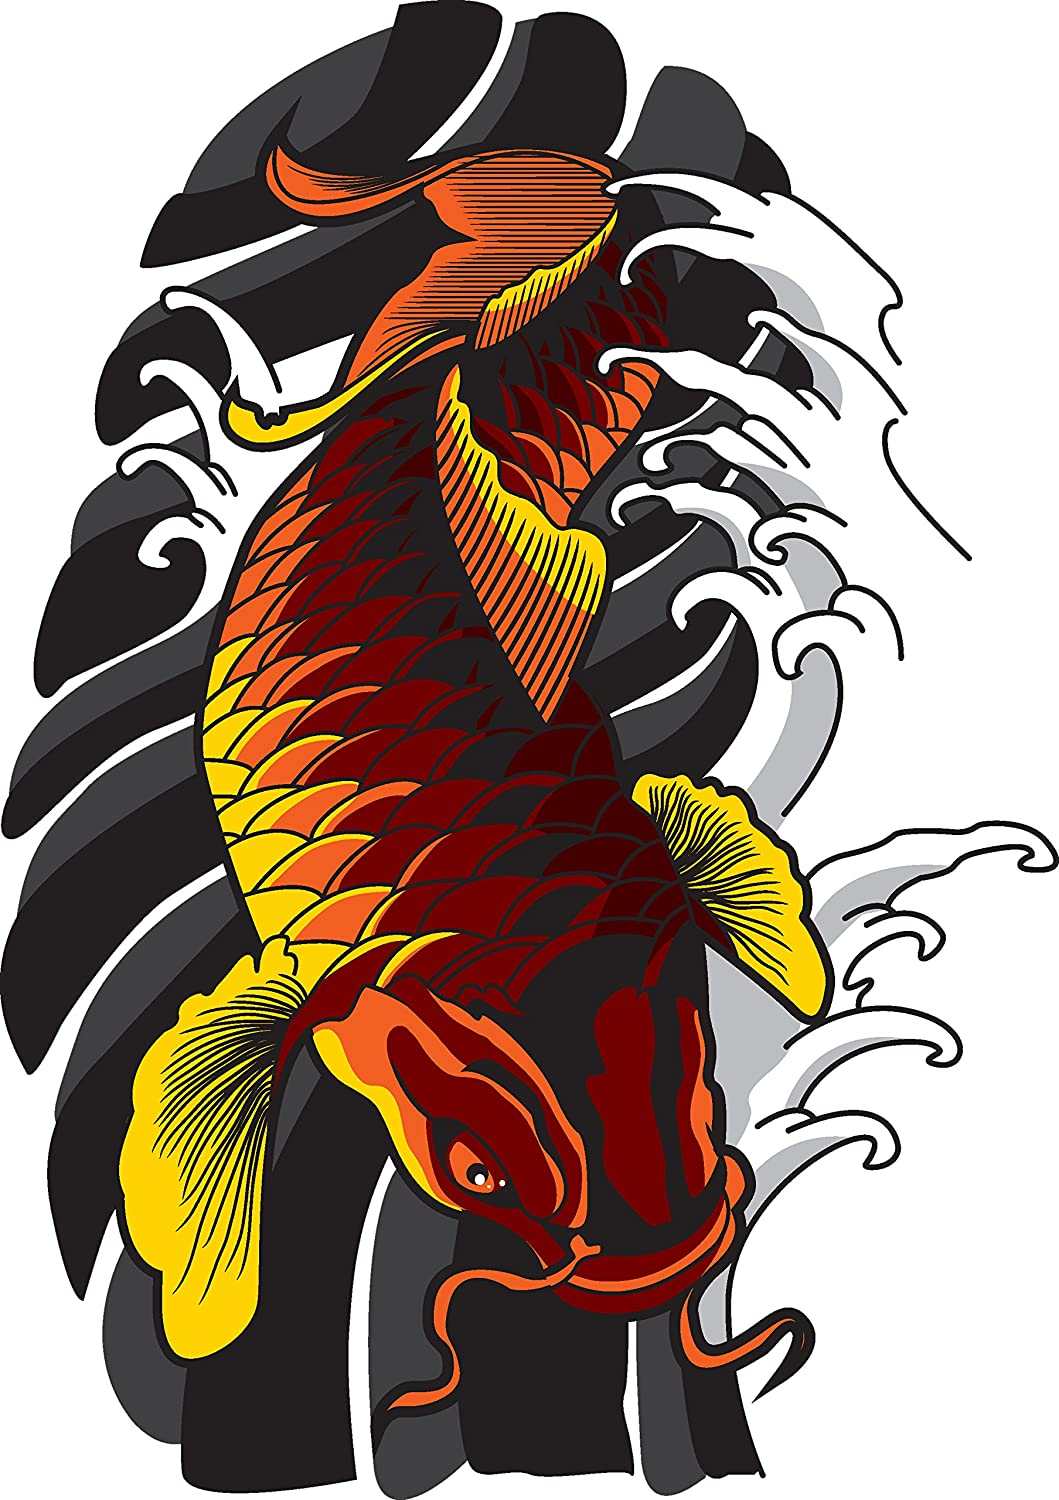 Traditional Japanese Koi Fish Tattoo Style Drawing Vinyl Decal Sticker 4 Tall Exterior Accessories Amazon Canada